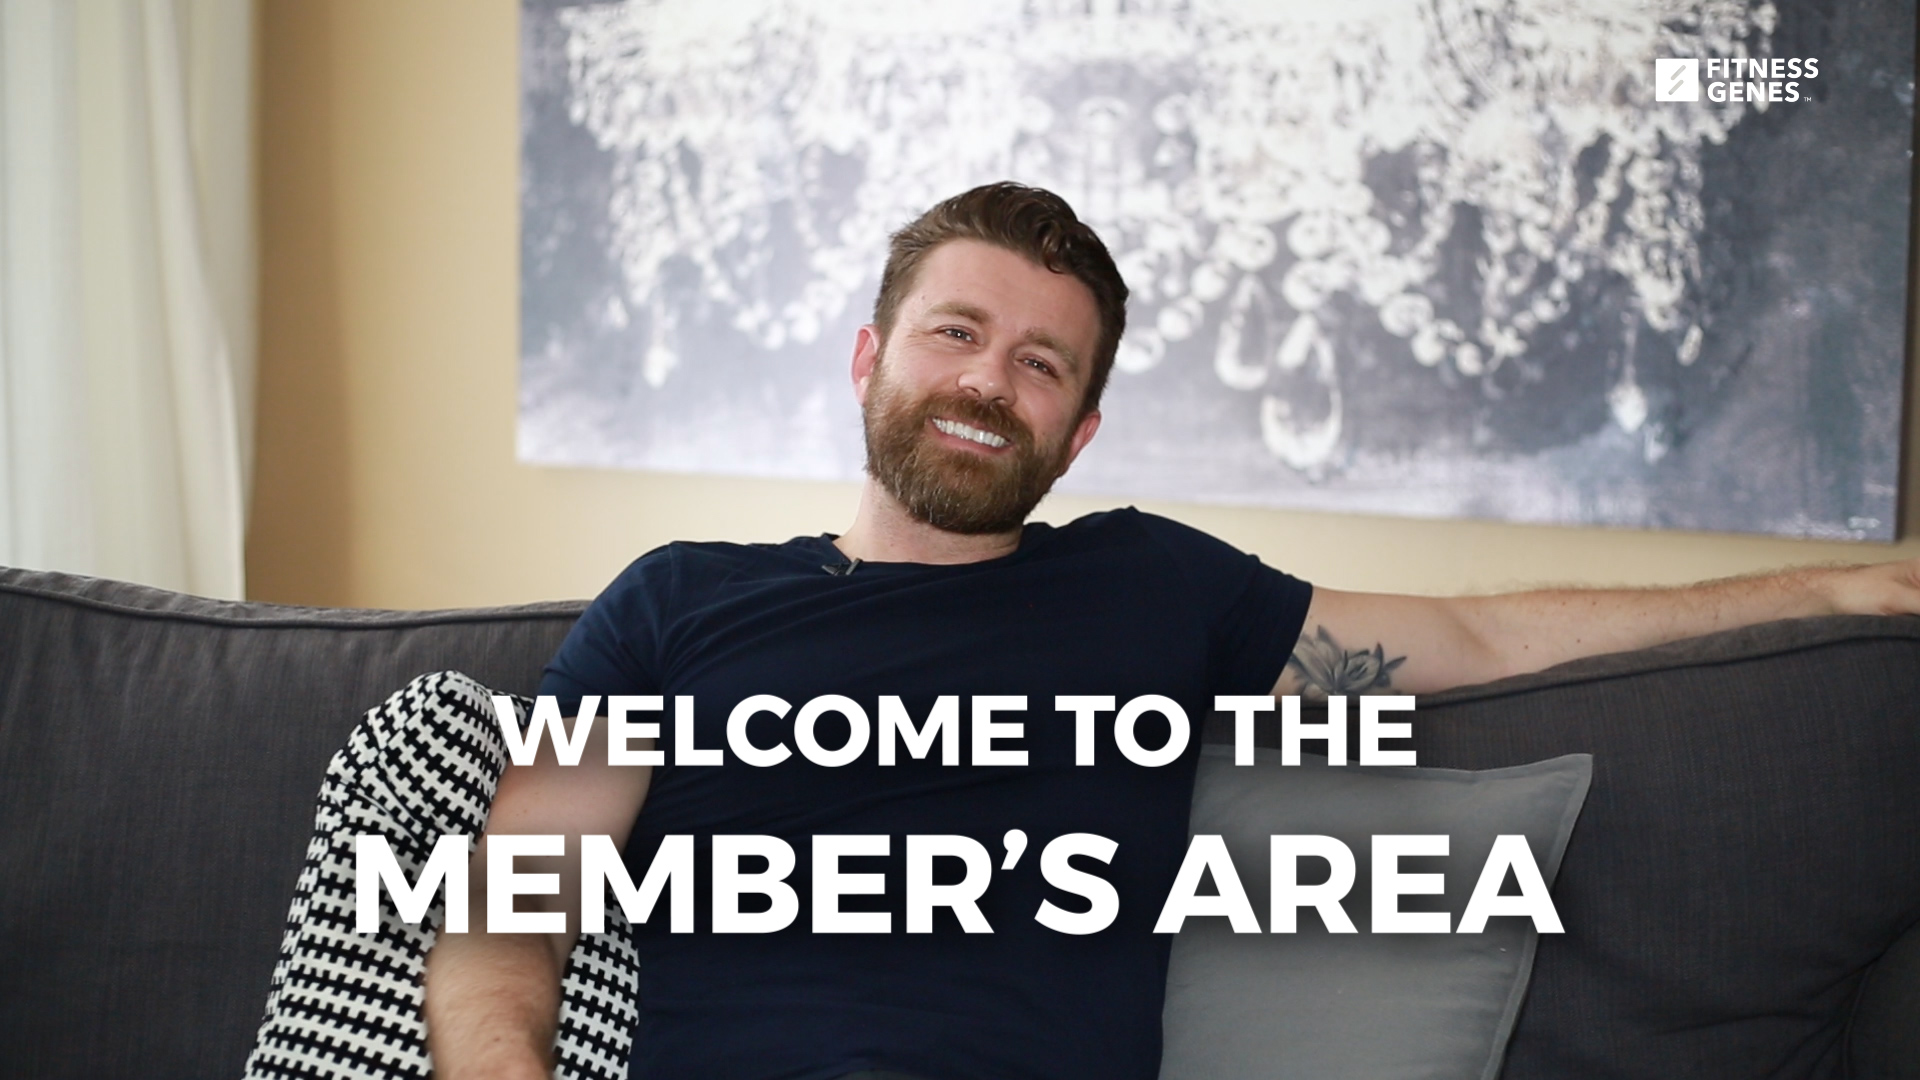 Welcome to the new Member's Area